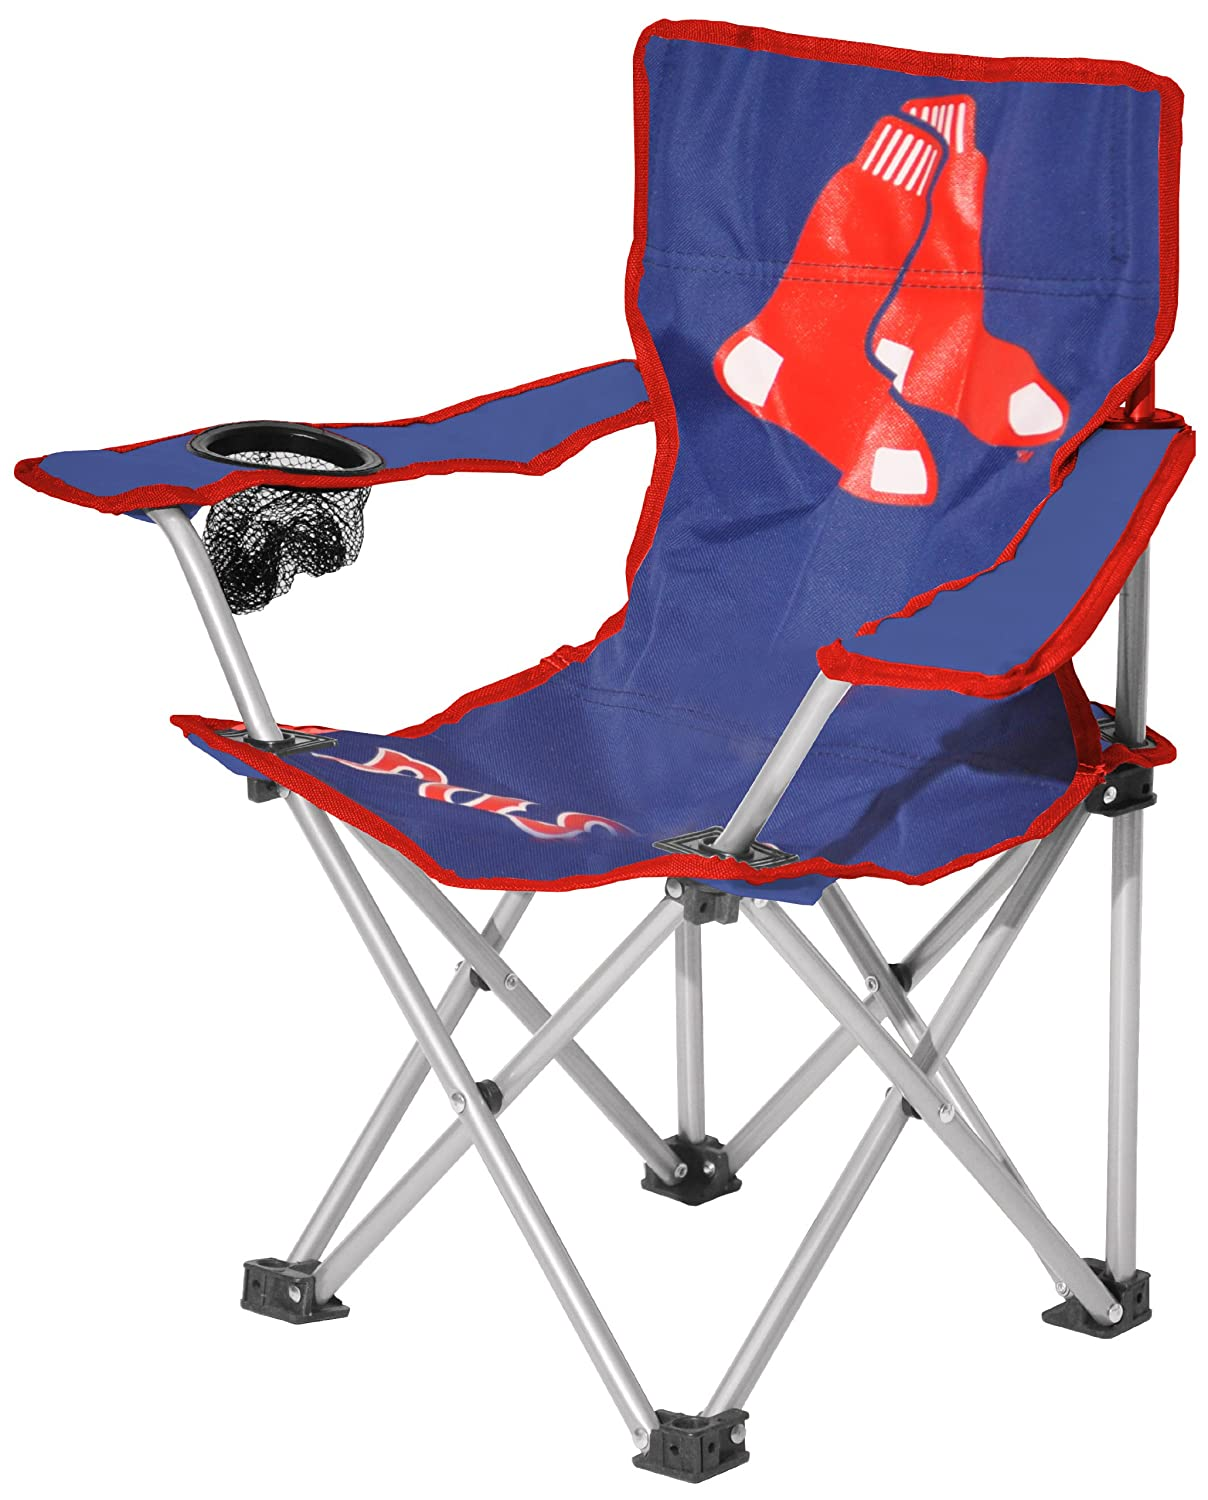 Toddler Camp Chairs With Arm Rest